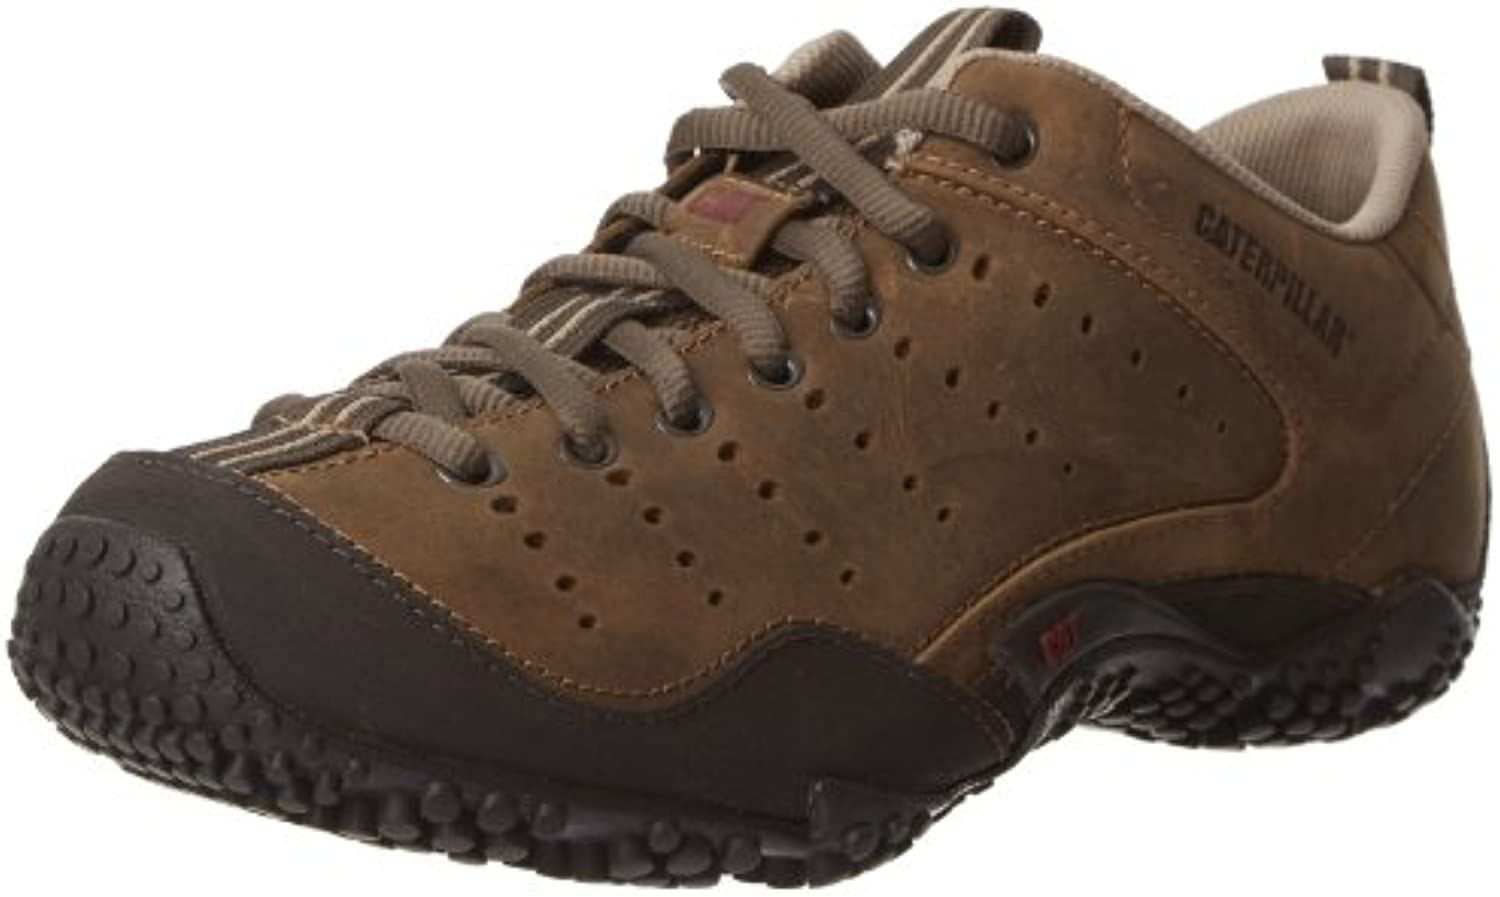 Caterpillar Hombres Shelk Low  Mid Tops Schnuersenkel Laufschuhe